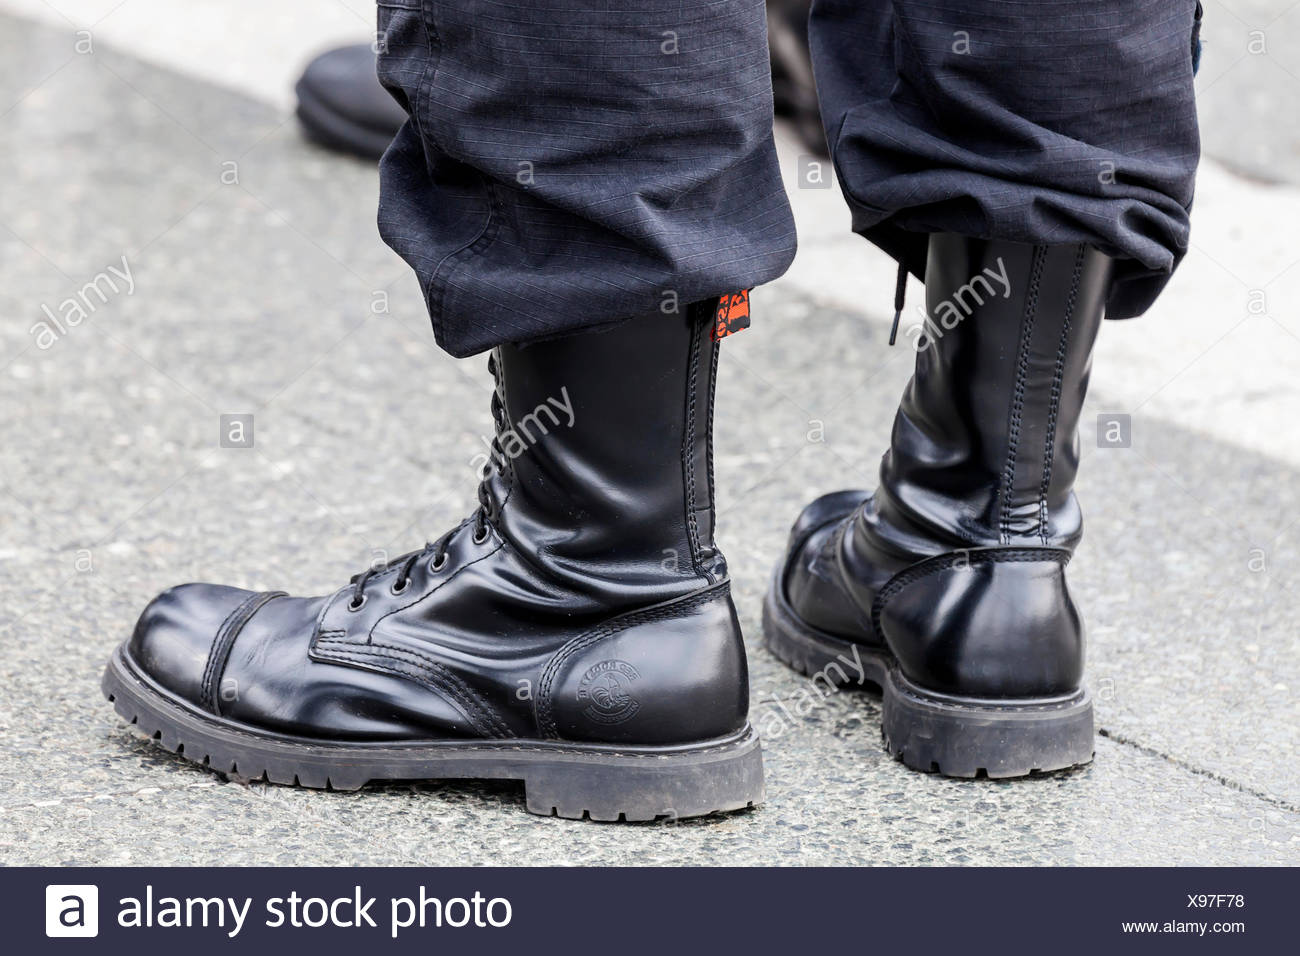 Member of a right-wing Hungarian party wearing combat boots, symbolic image for right-wing extremism, Budapest, Hungary - Stock Image